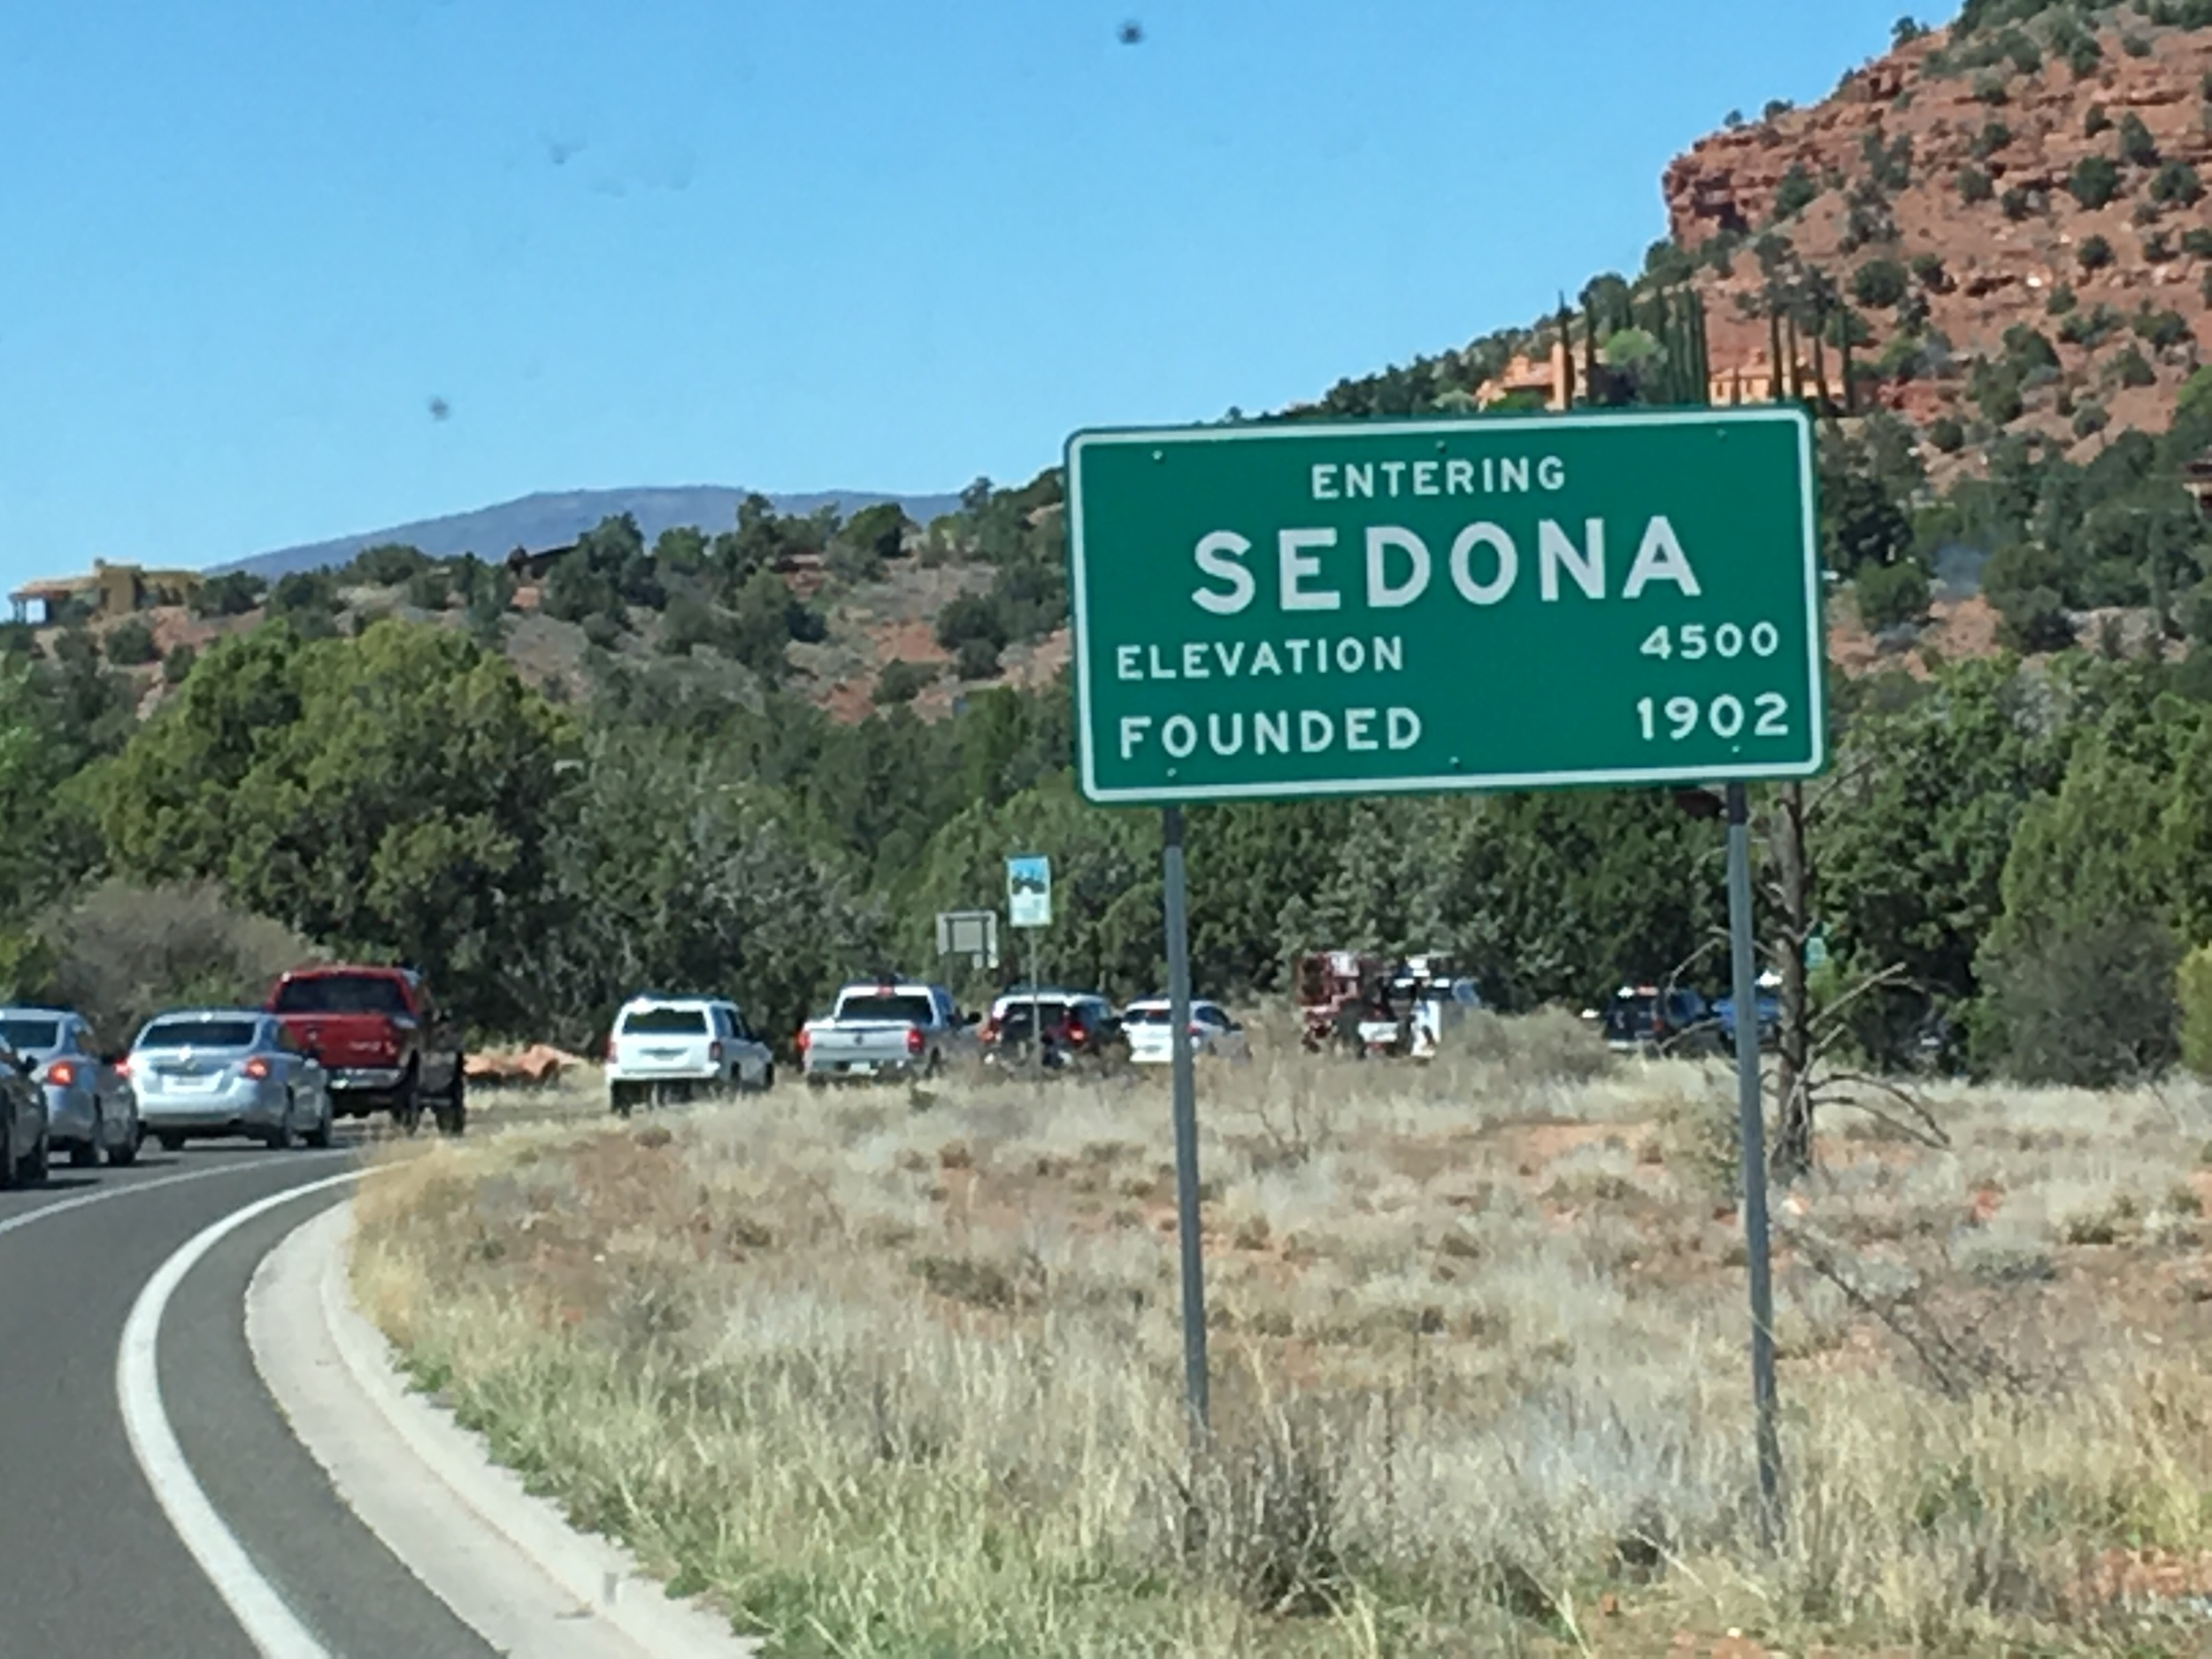 Spring break and everyone is going to Sedona. The city is surrounded by red rocks. The climate is moderate year round; it was in the low 70's today.